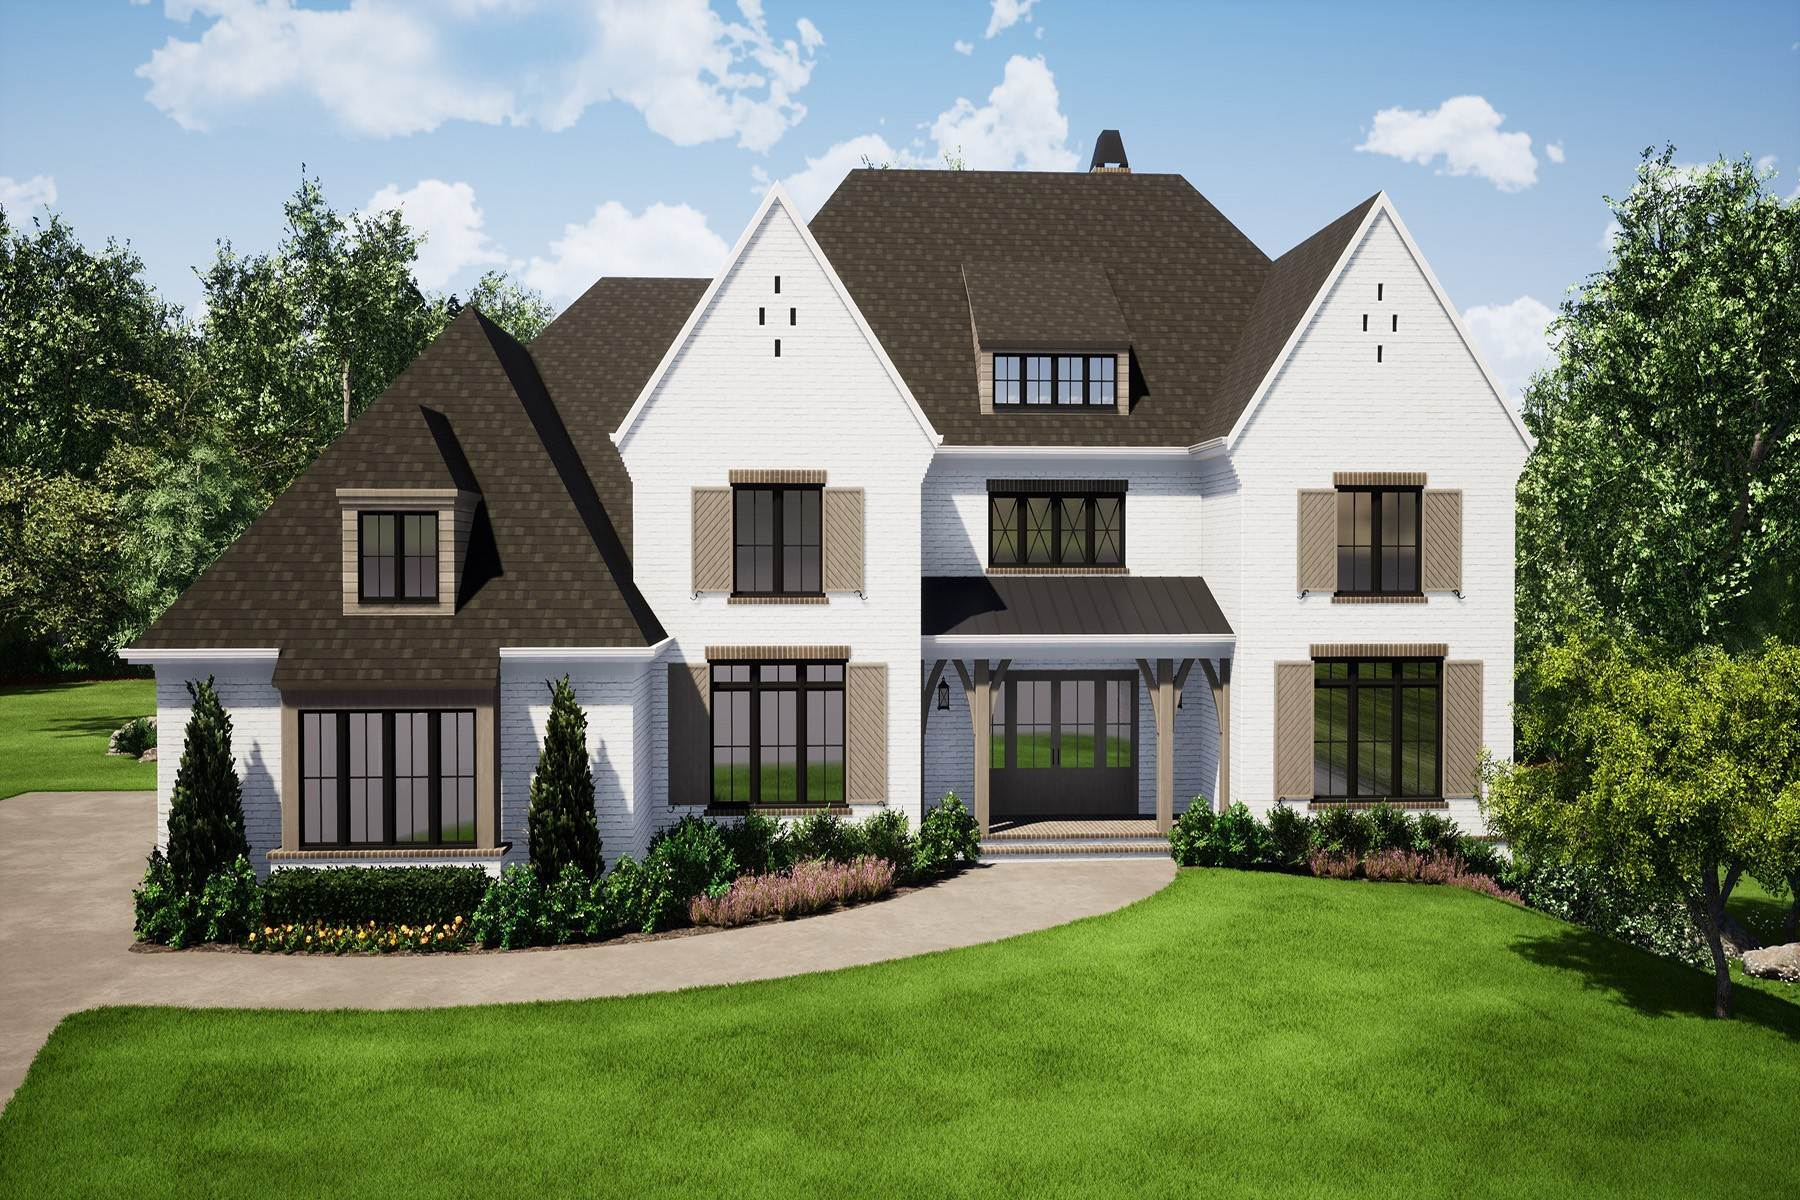 Single Family Homes for Active at Exquisite New Construction in Gated Milton Community 10240 Cedar Ridge Drive Milton, Georgia 30004 United States